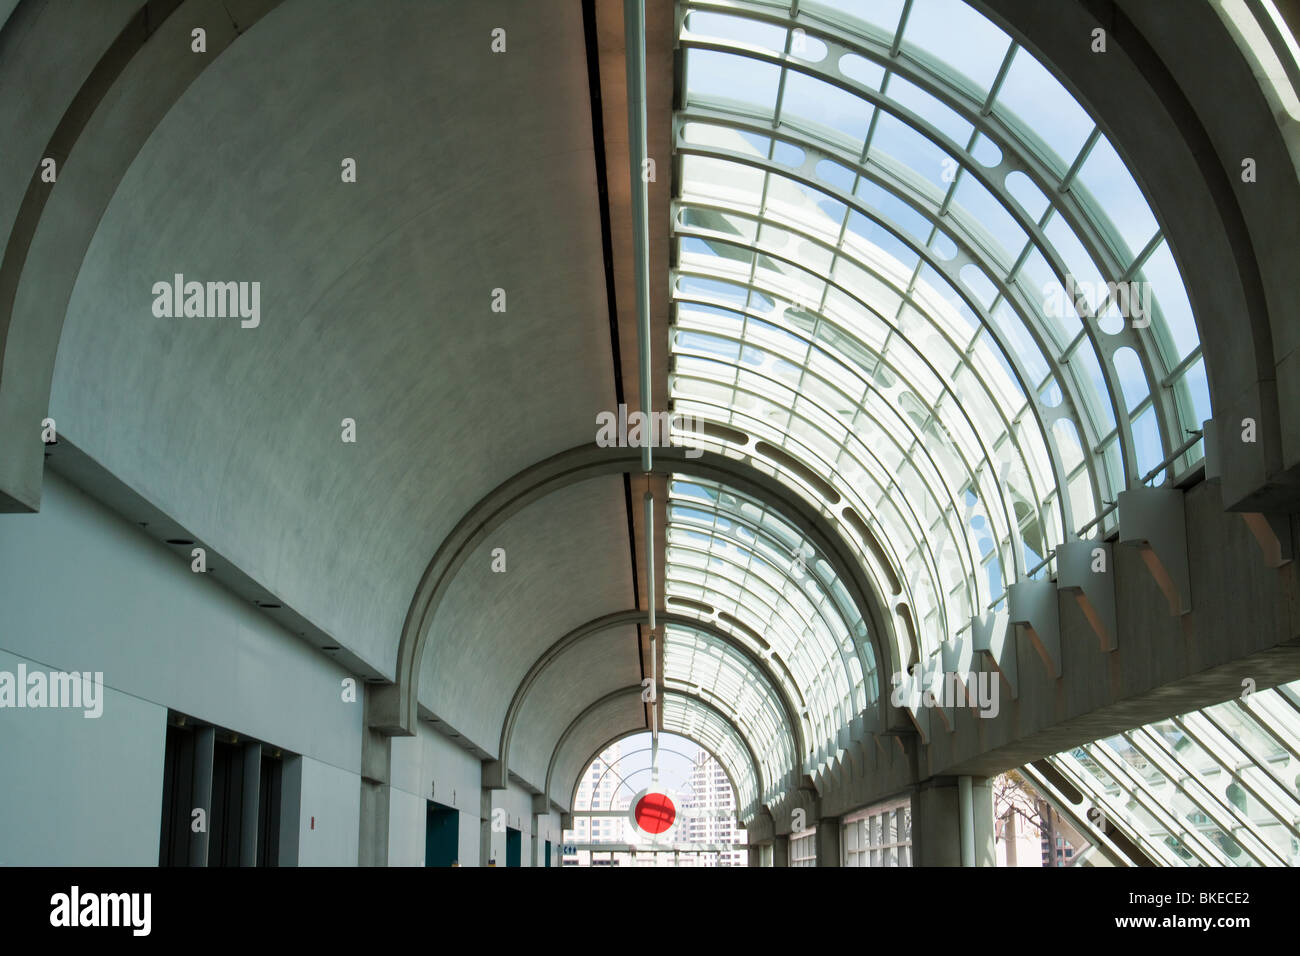 Delightful Curved Glass Ceiling Over Hallway In San Diego Convention Center   Stock  Image